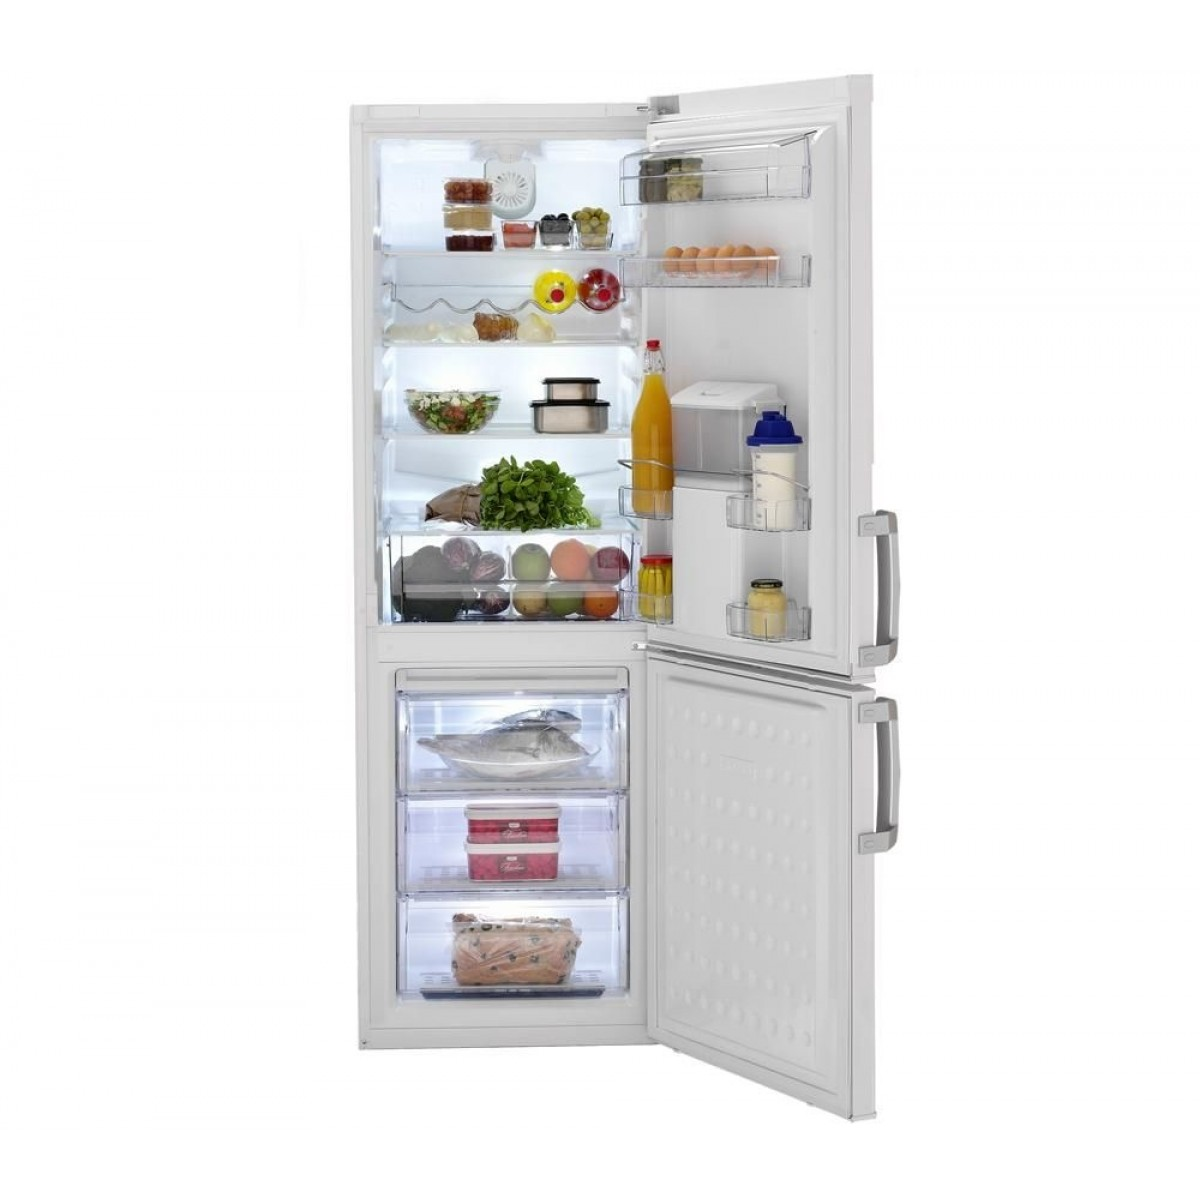 refrigerateur combin beko de 250 litres avec distributeur. Black Bedroom Furniture Sets. Home Design Ideas